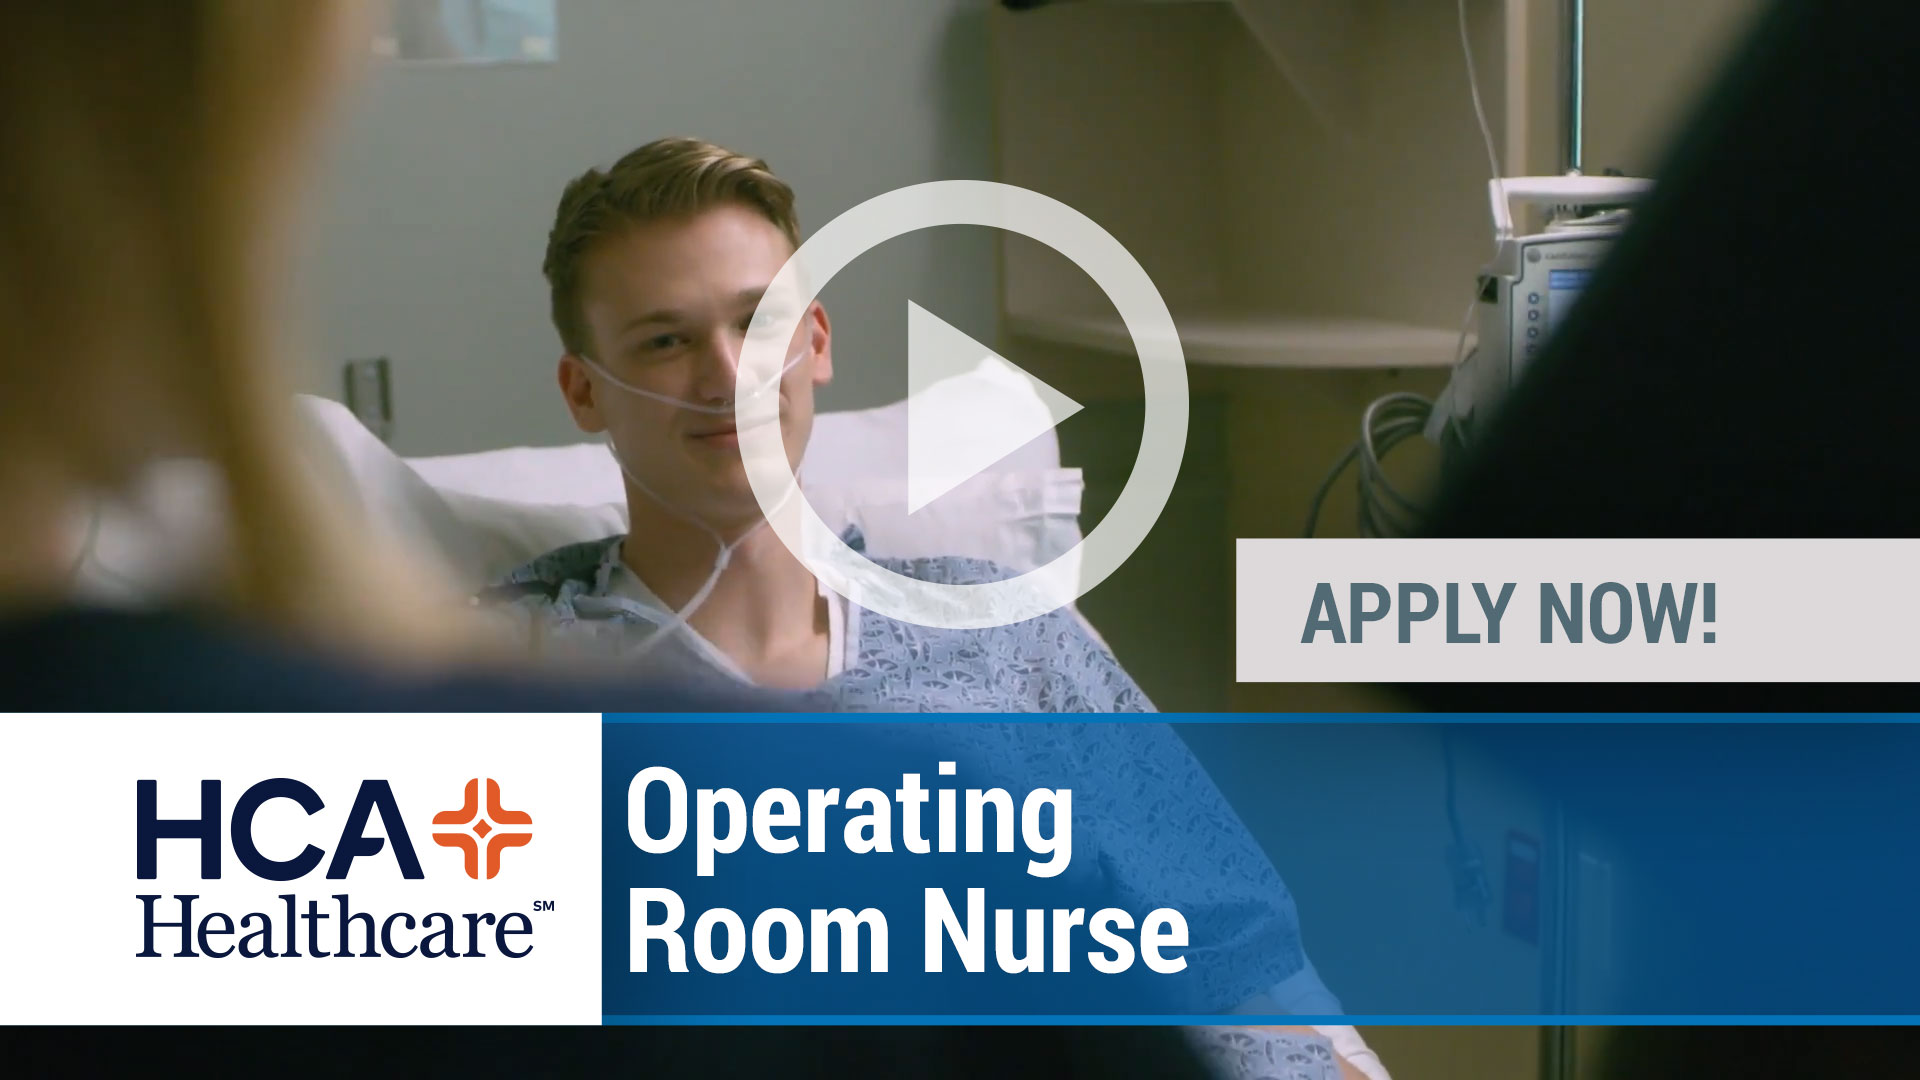 Watch our careers video for available job opening Operating Room Nurse in Richmond, Virginia